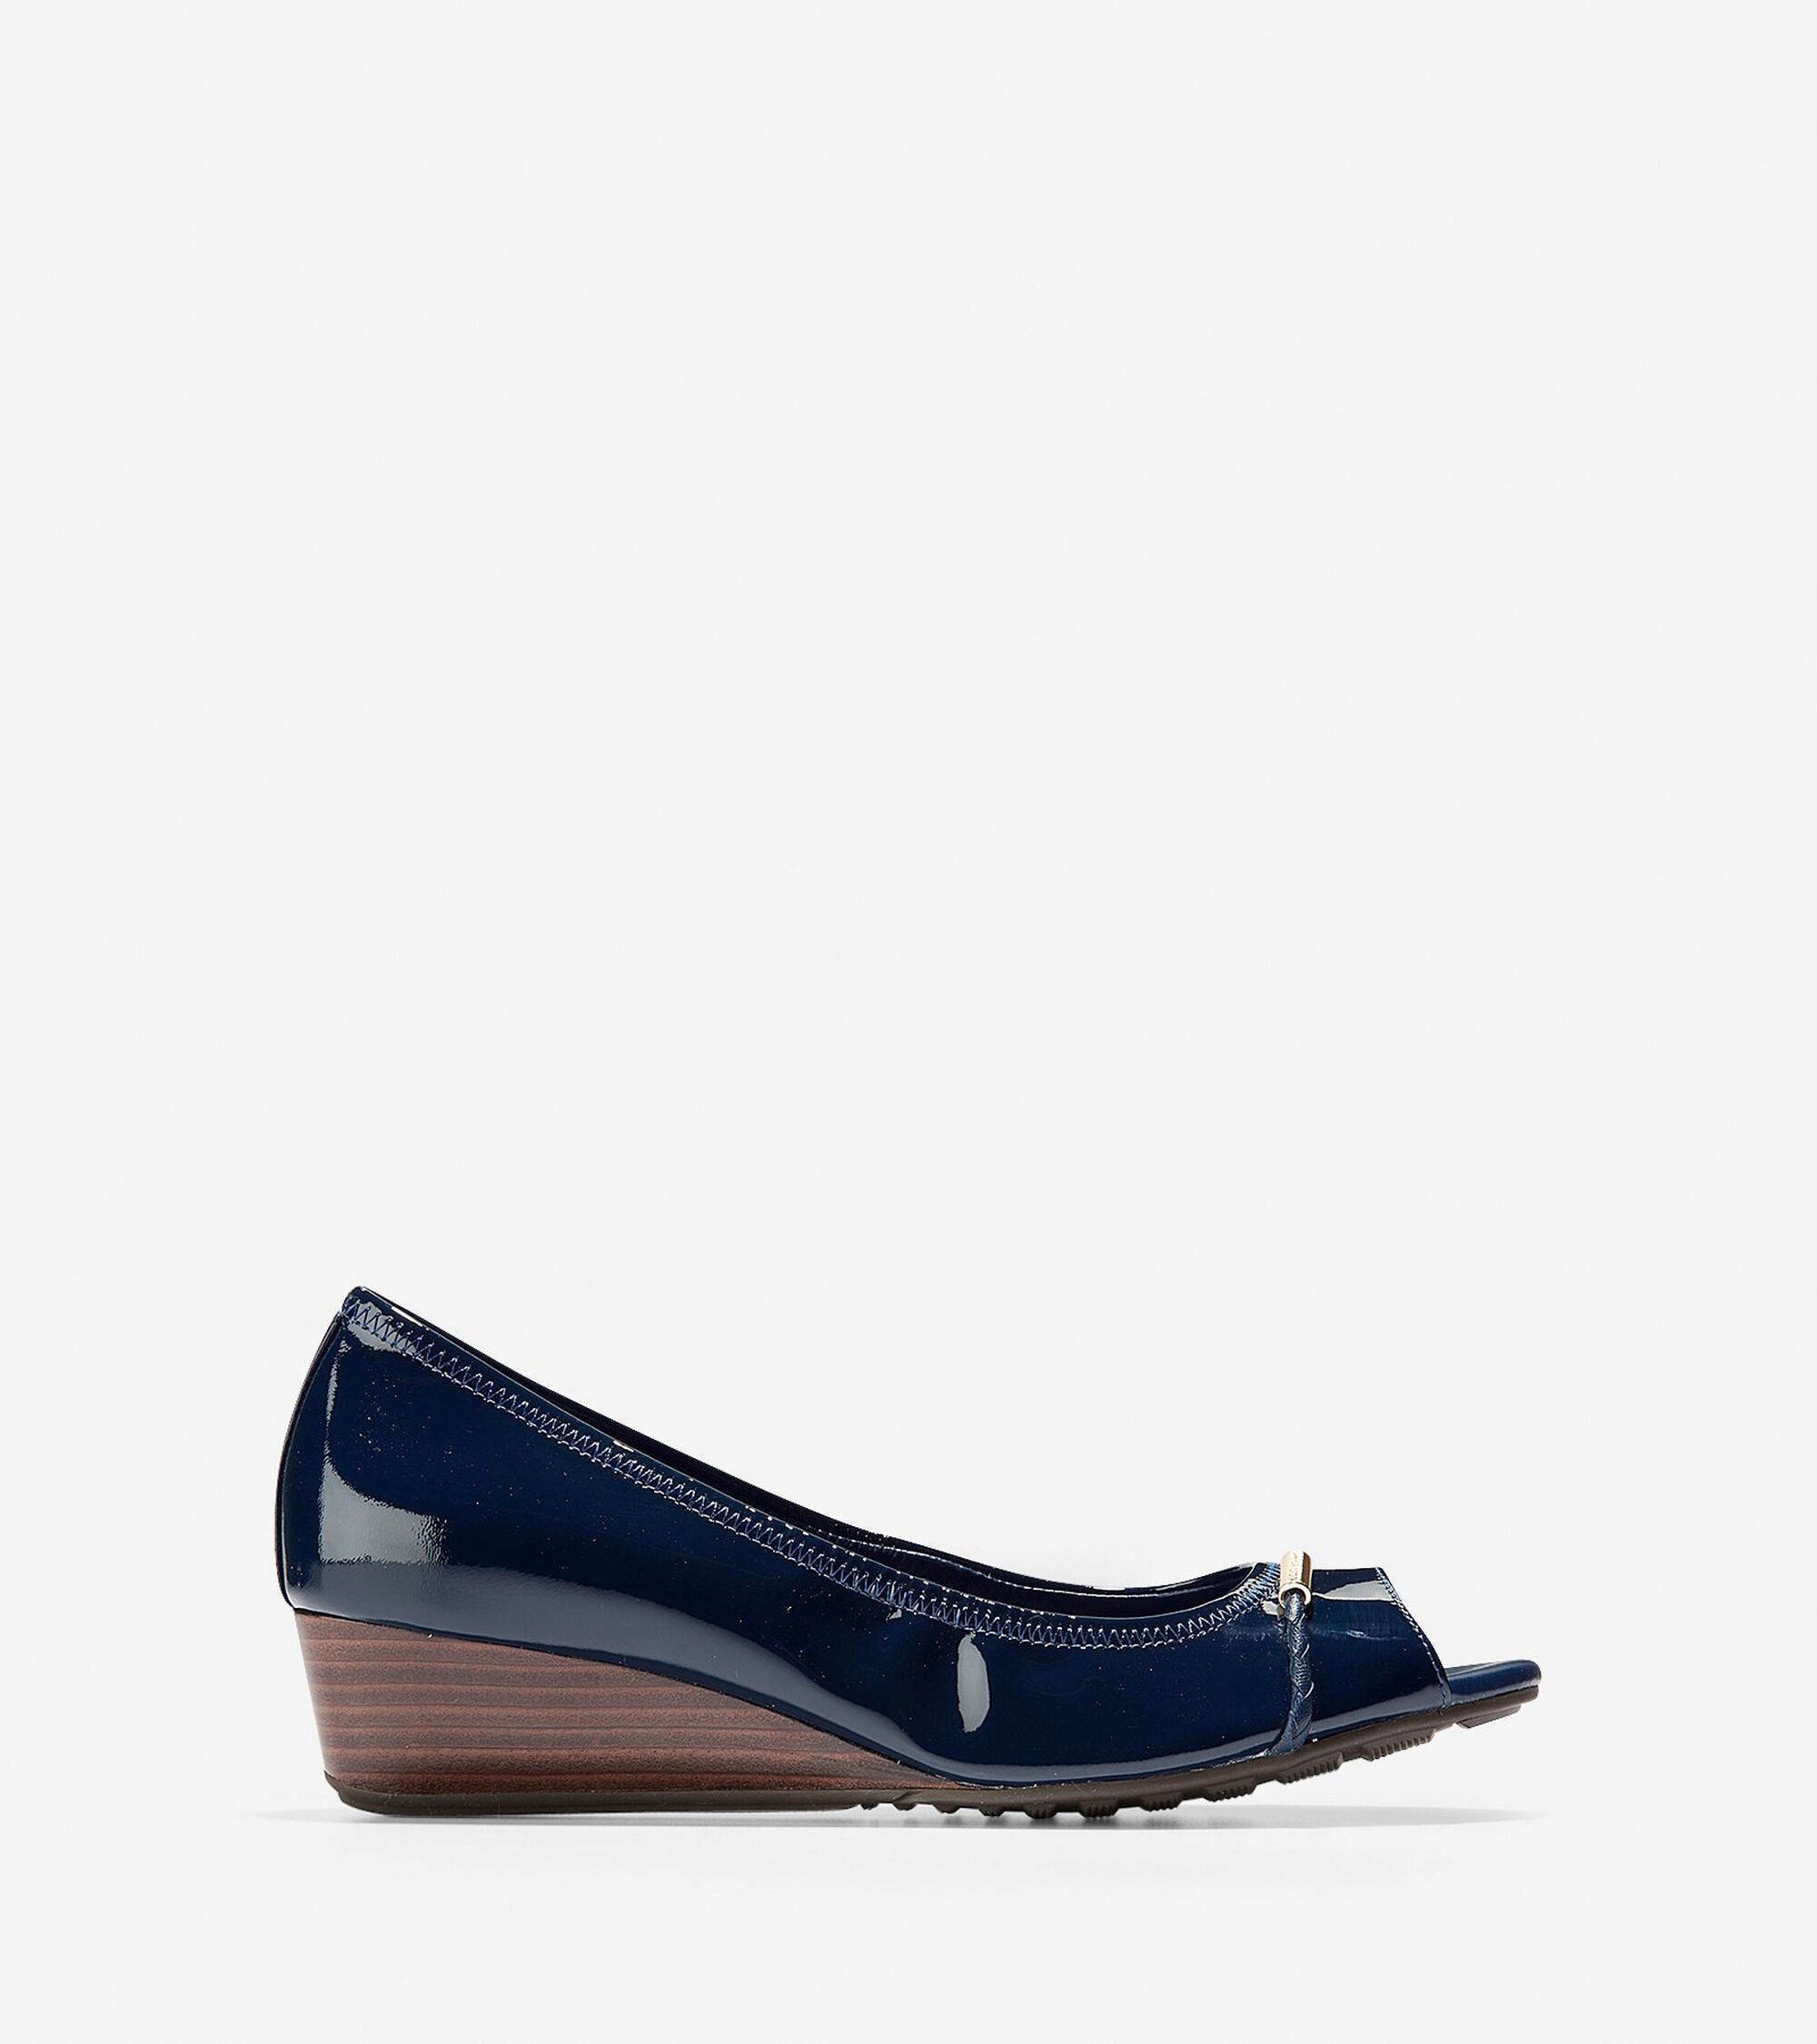 Cole Haan Women's Emory Braided Open Toe Wedge (40mm)